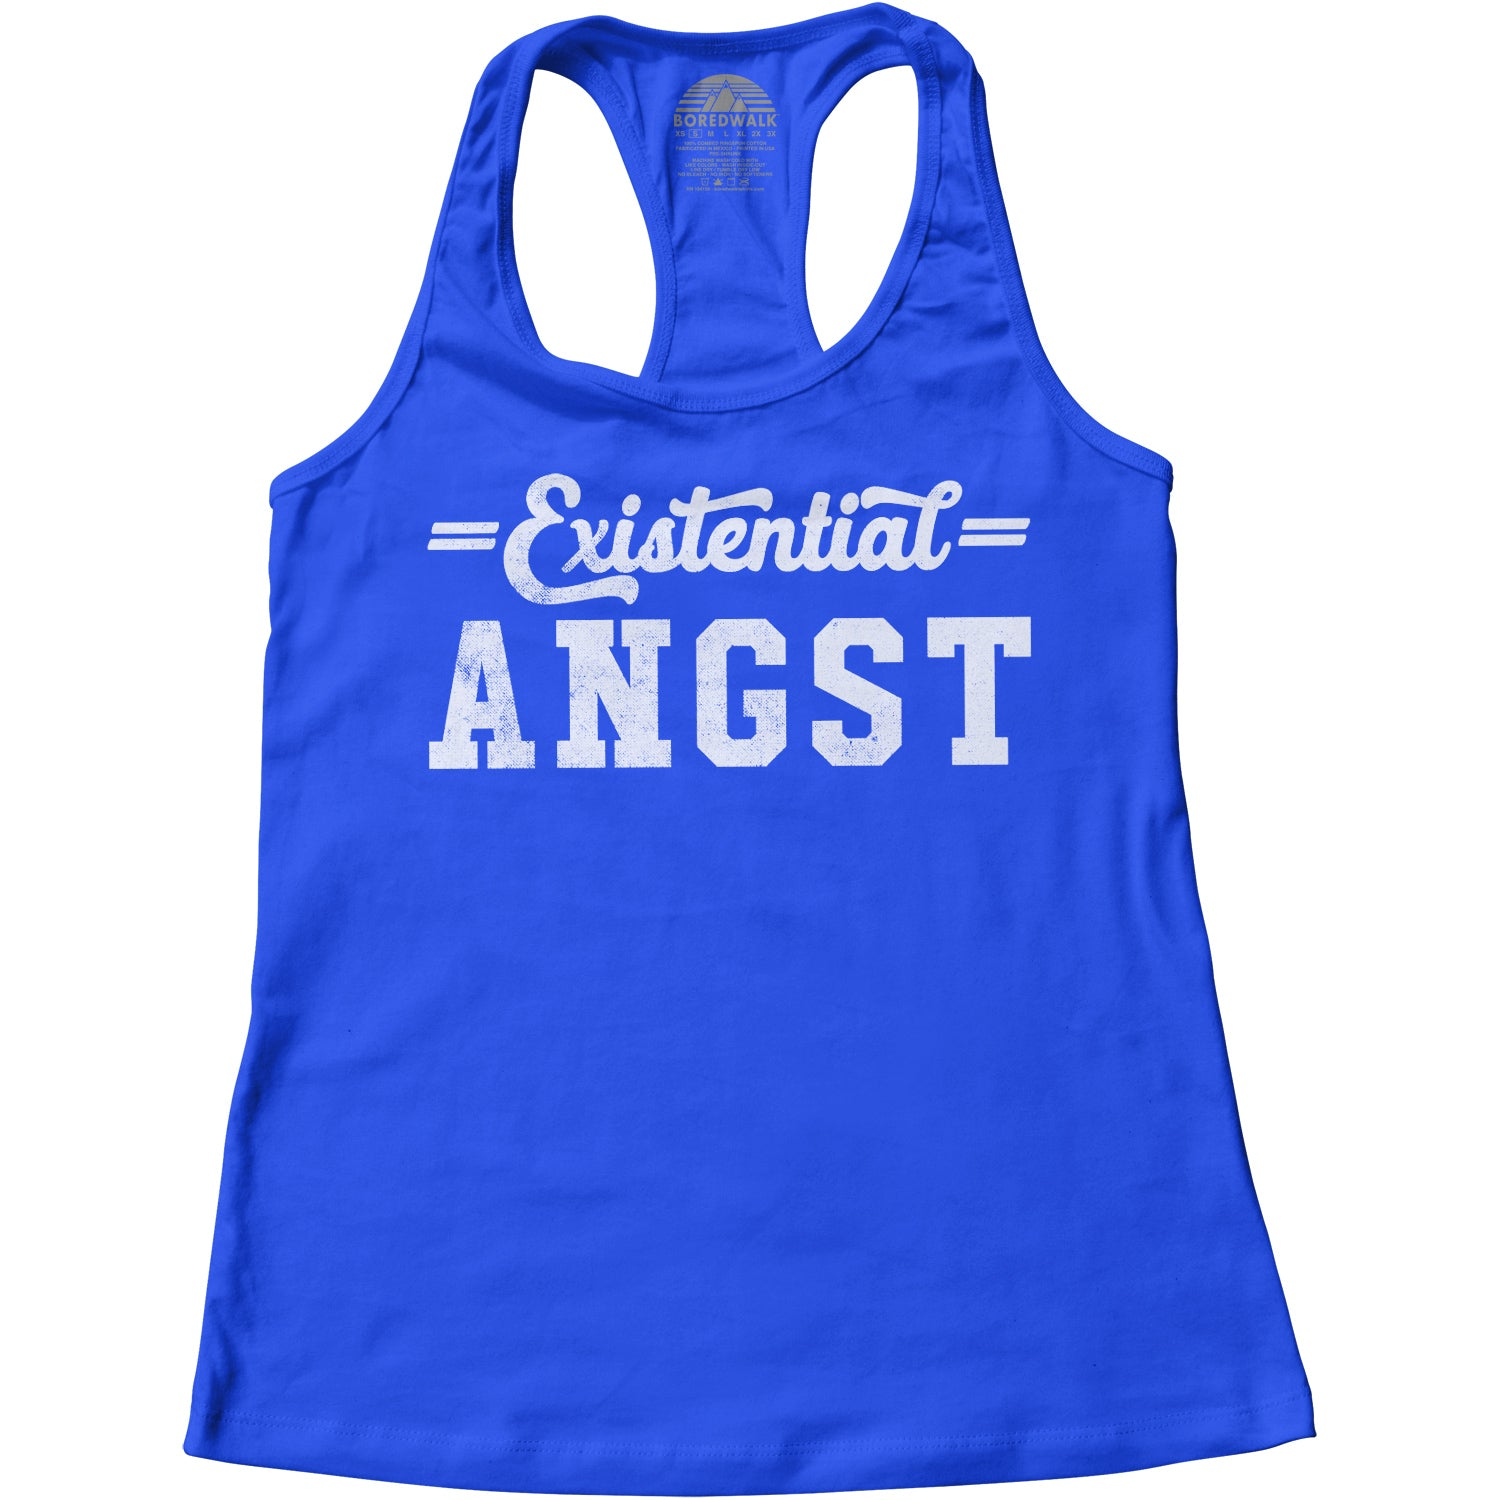 Women's Existential Angst Racerback Tank Top